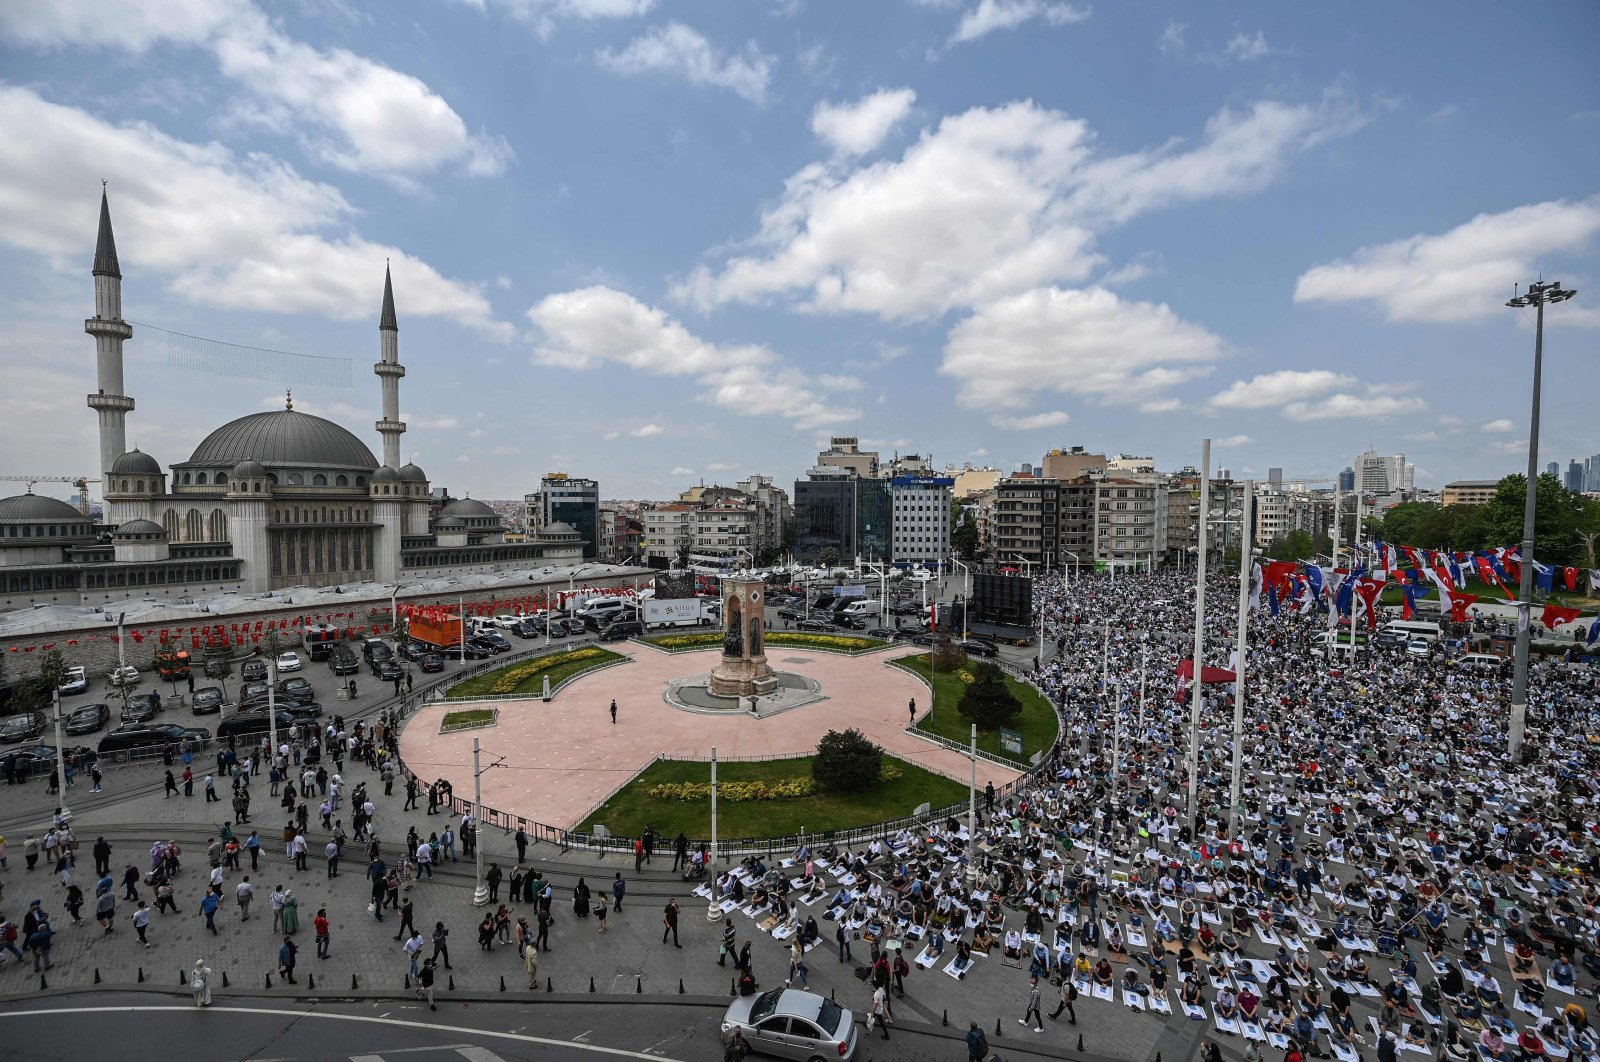 A large crowd perform prayers outside the mosque, in Istanbul, Turkey, May 28, 2021. (AFP PHOTO)